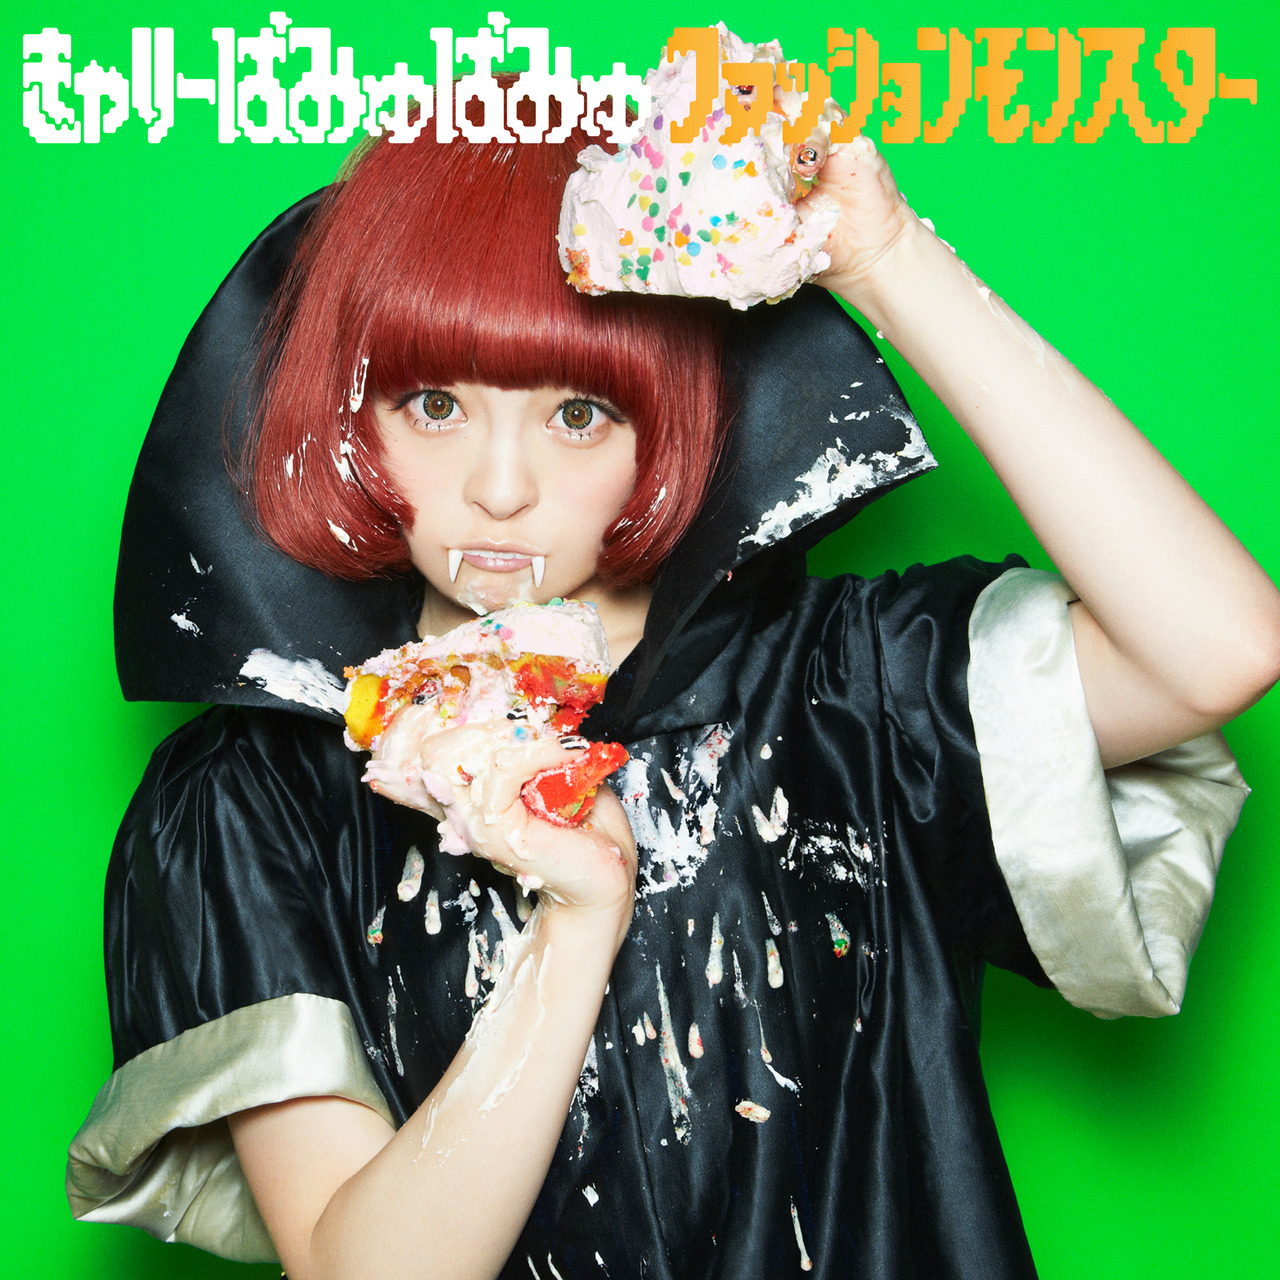 20160209.08 Kyary Pamyu Pamyu - Fashion Monster cover 2.jpg